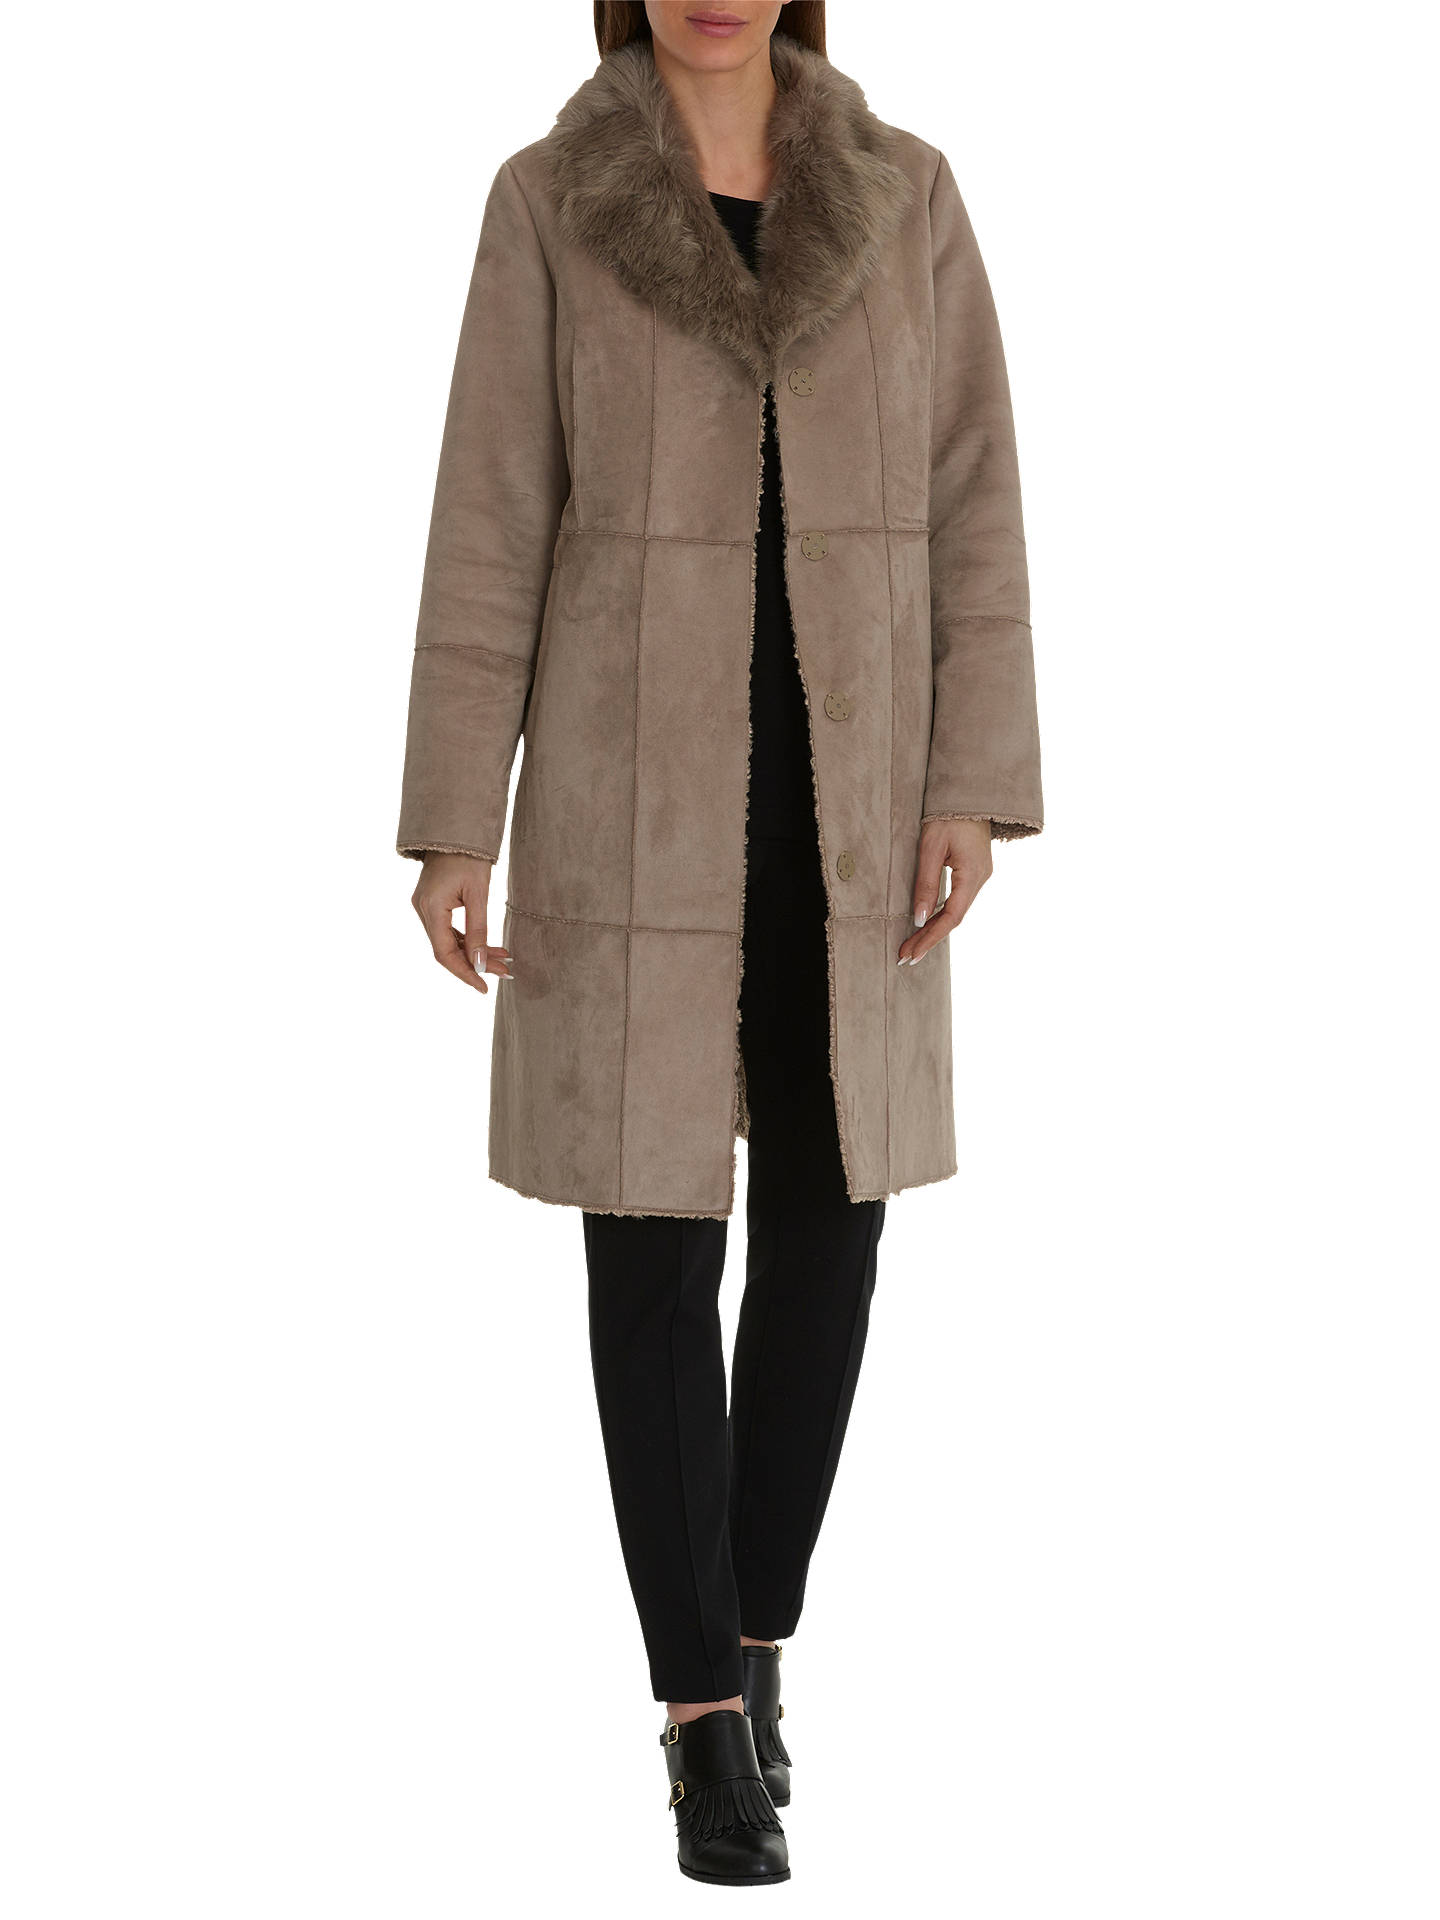 5409ef119242 BuyBetty Barclay Faux Shearling Coat, Moon Rock, 10 Online at johnlewis.com  ...